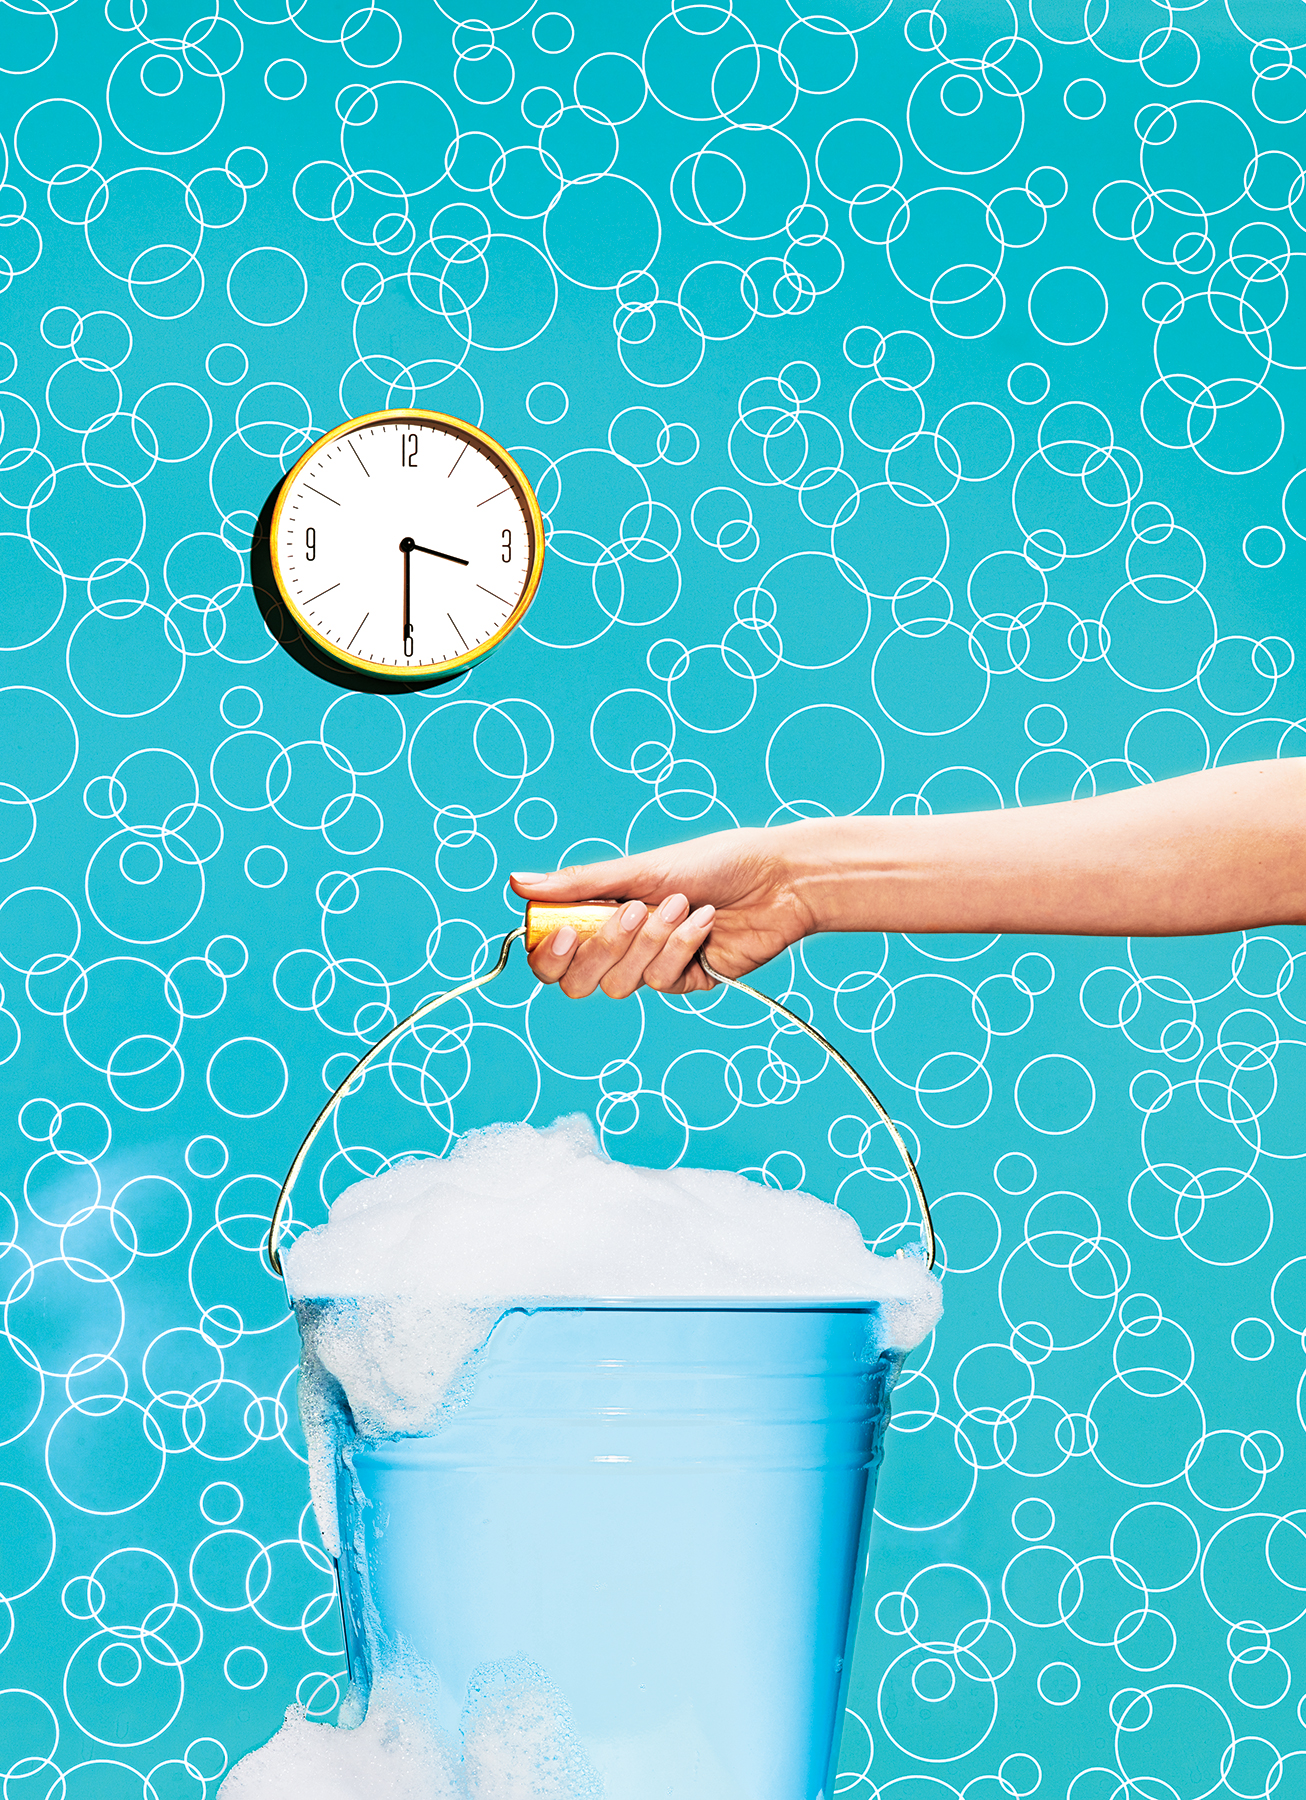 Blue Bucket and Clock